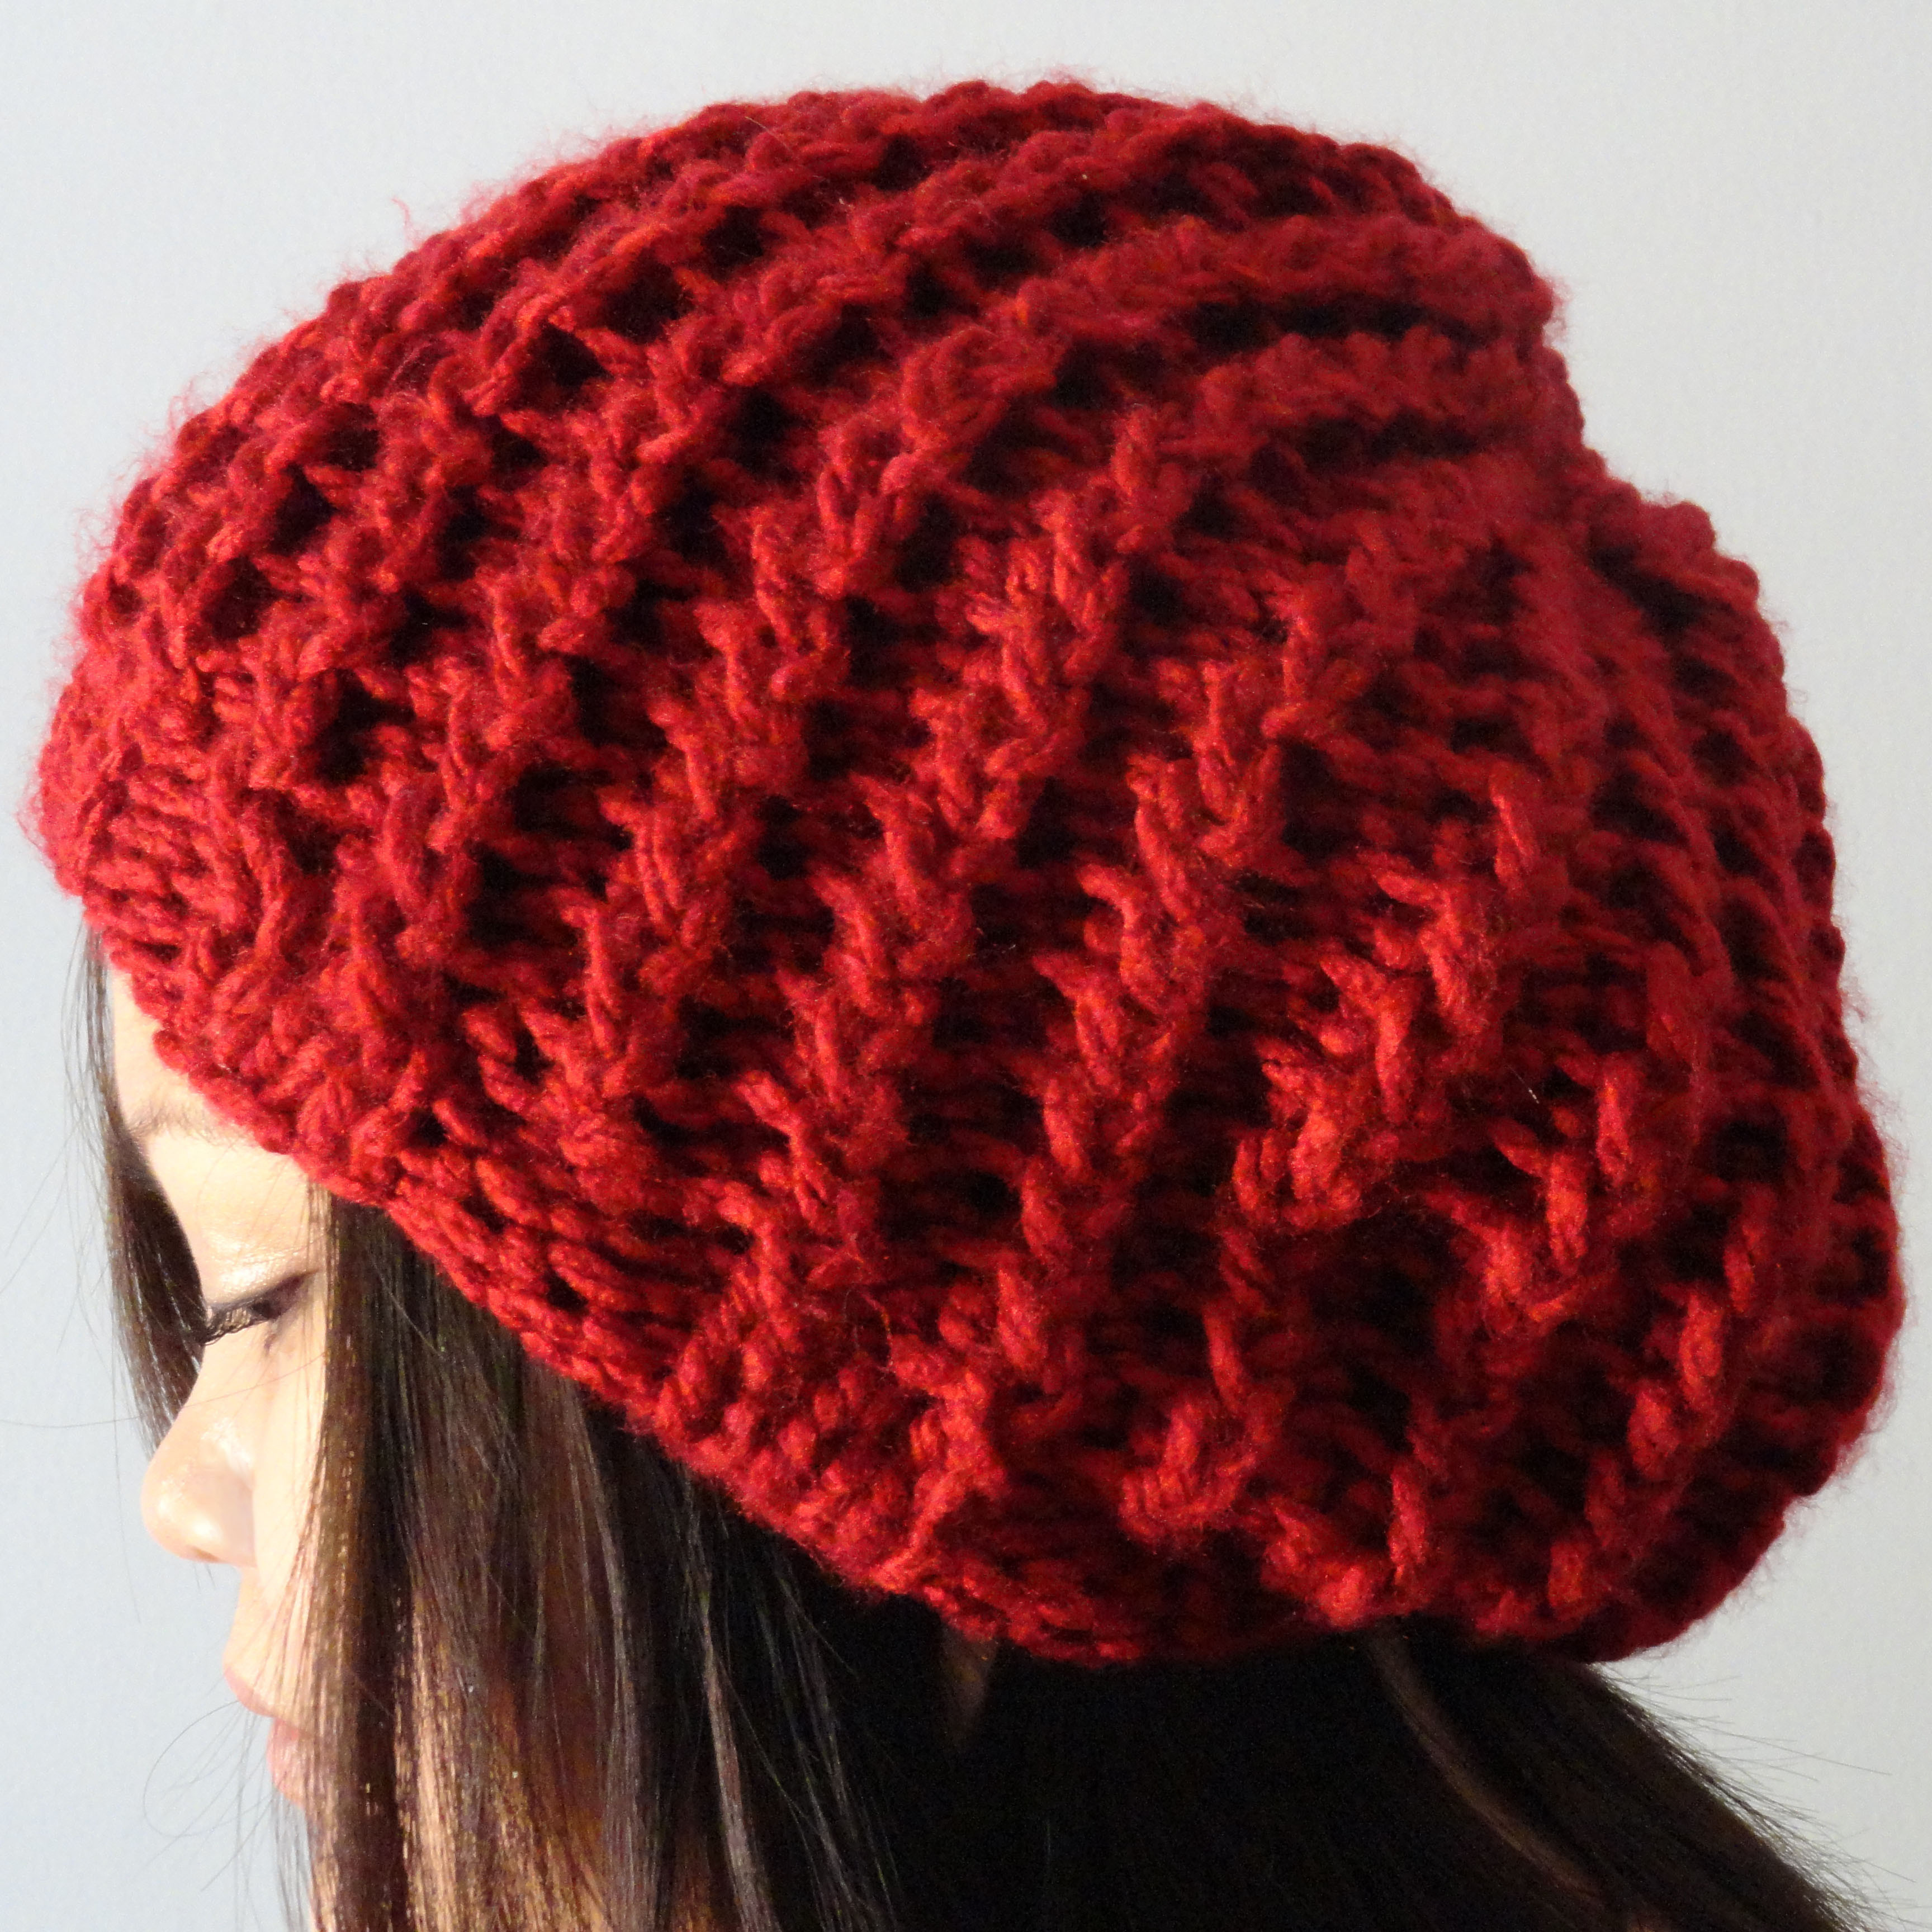 Knit Hat Patterns Fresh Rickrack Rib Slouchy Hat Purl Avenue Of Gorgeous 49 Pictures Knit Hat Patterns